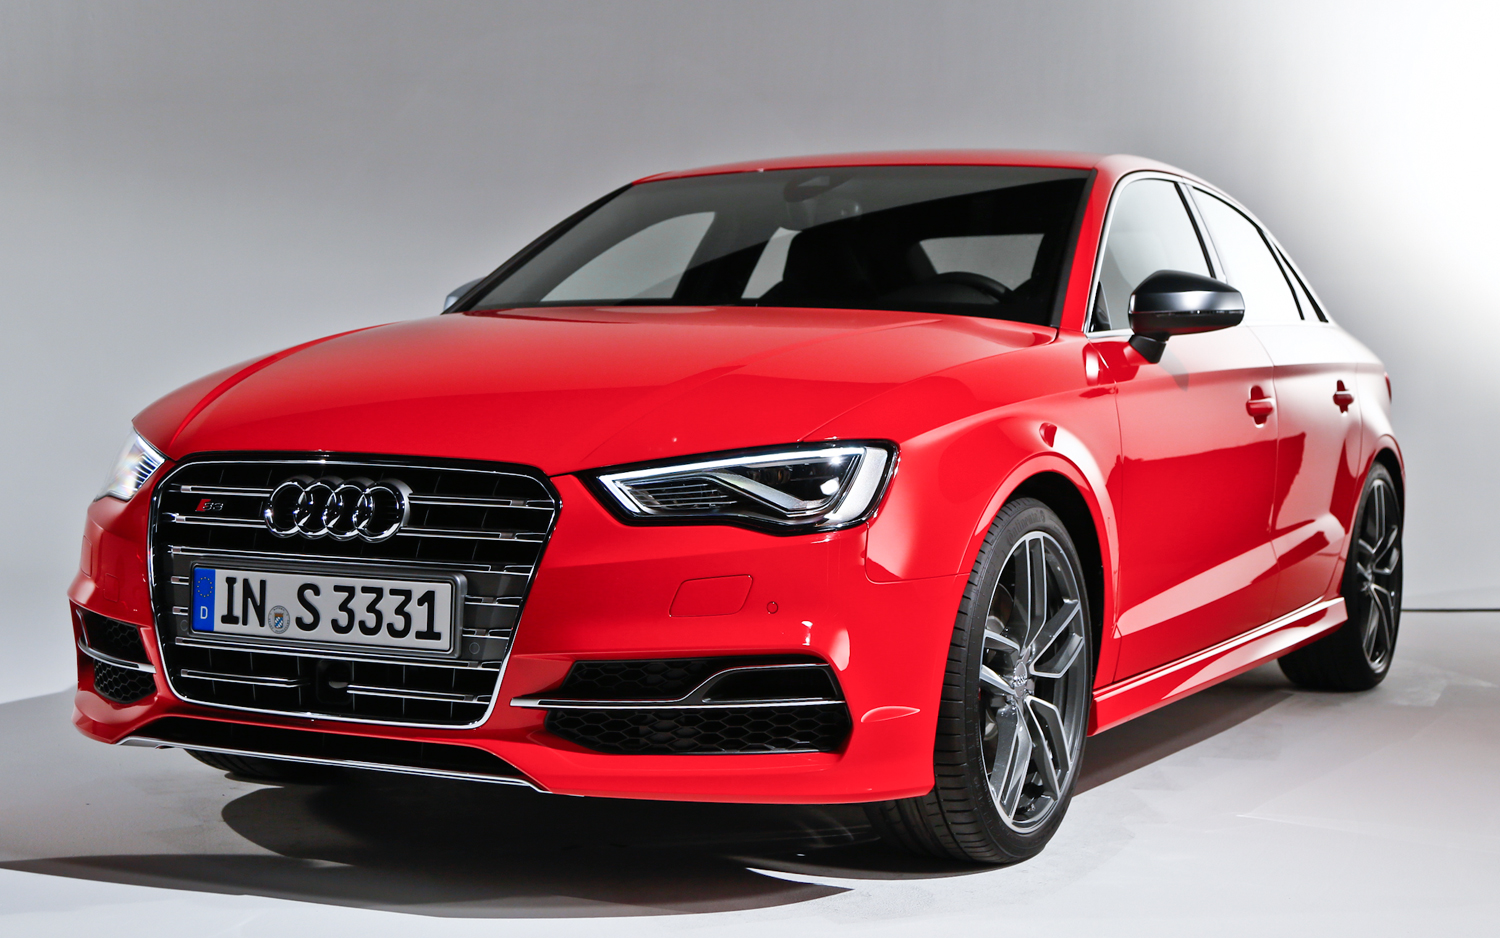 2015 Audi S3 Sedan Exterior Profile (Photo 3 of 10)